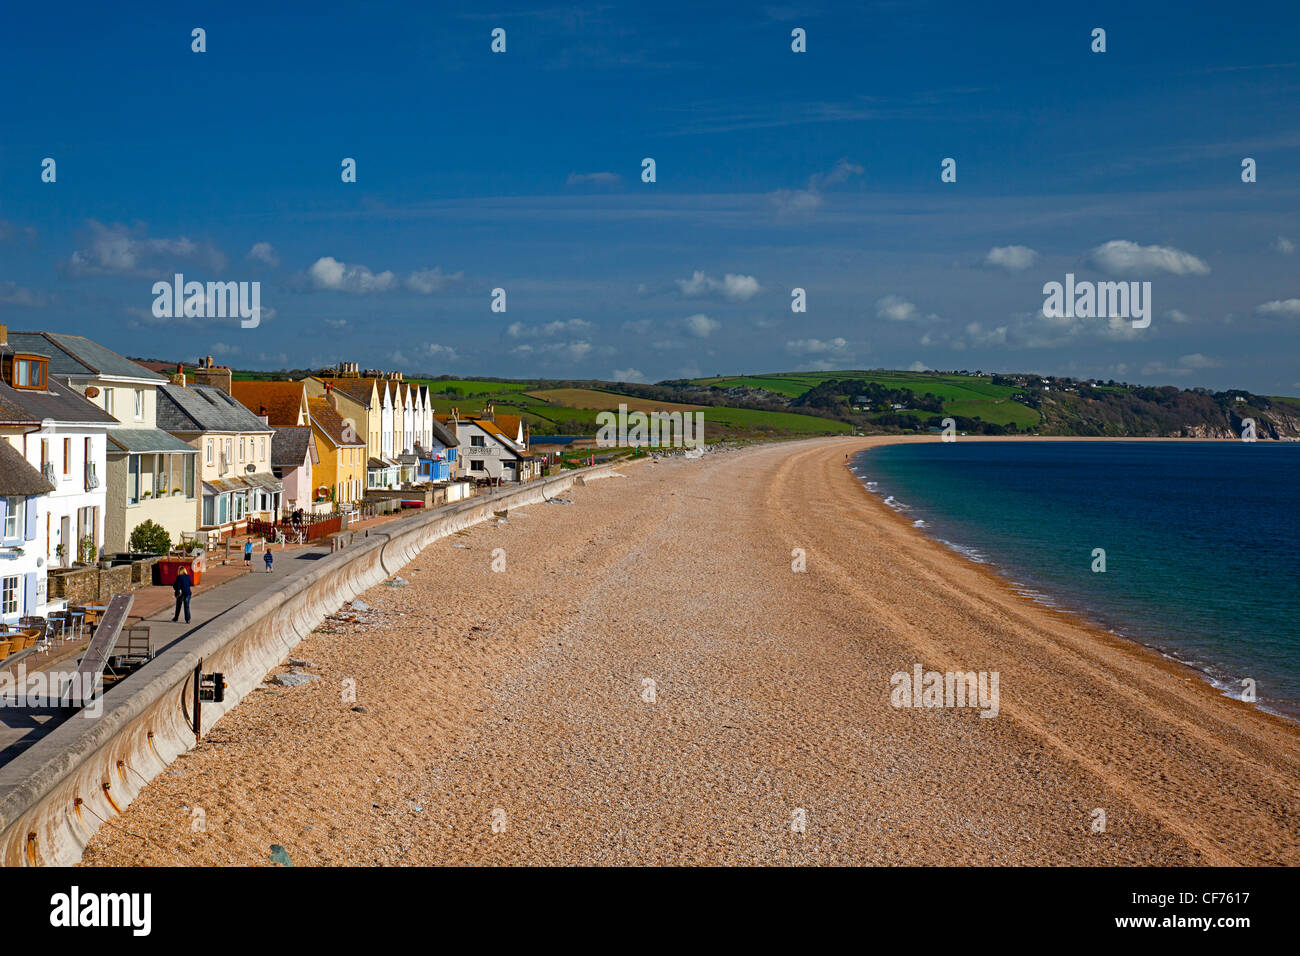 Sensational The Beach And Sea Front Cottages At Torness On The Coast Of Beutiful Home Inspiration Aditmahrainfo